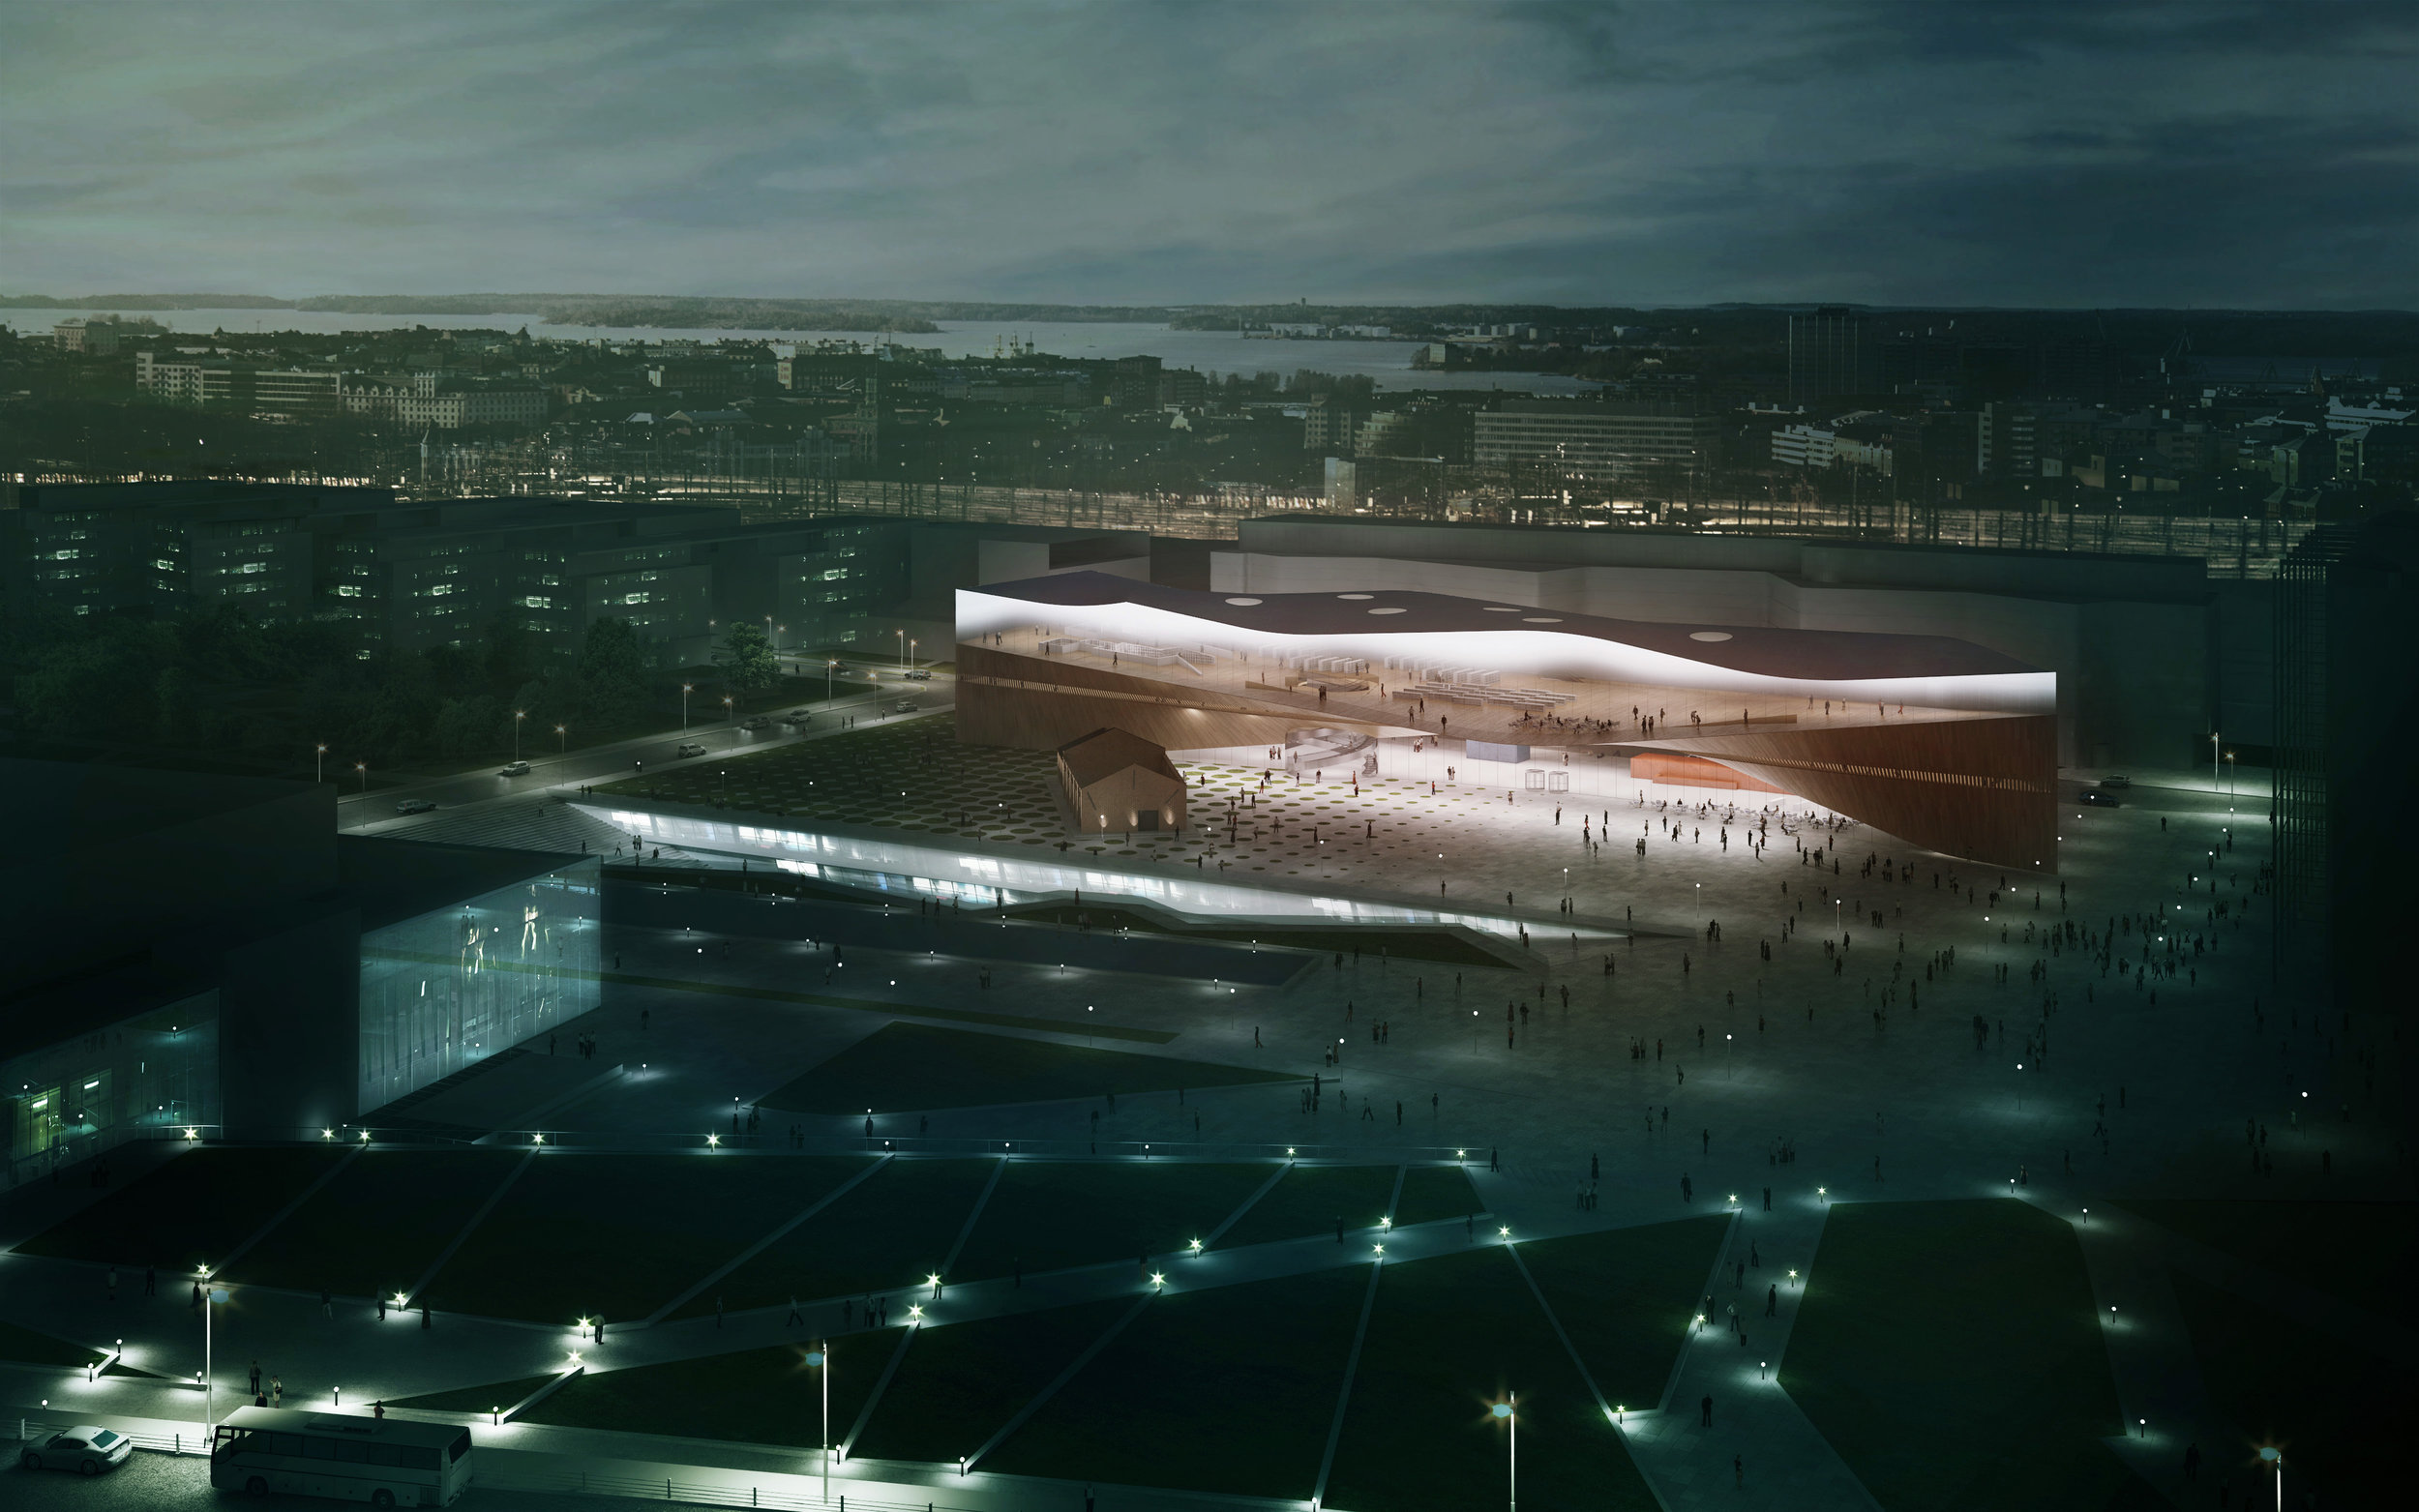 The new Central Library of Helsinki, Oodi, by ALA architects will opens its doors in December 2018.